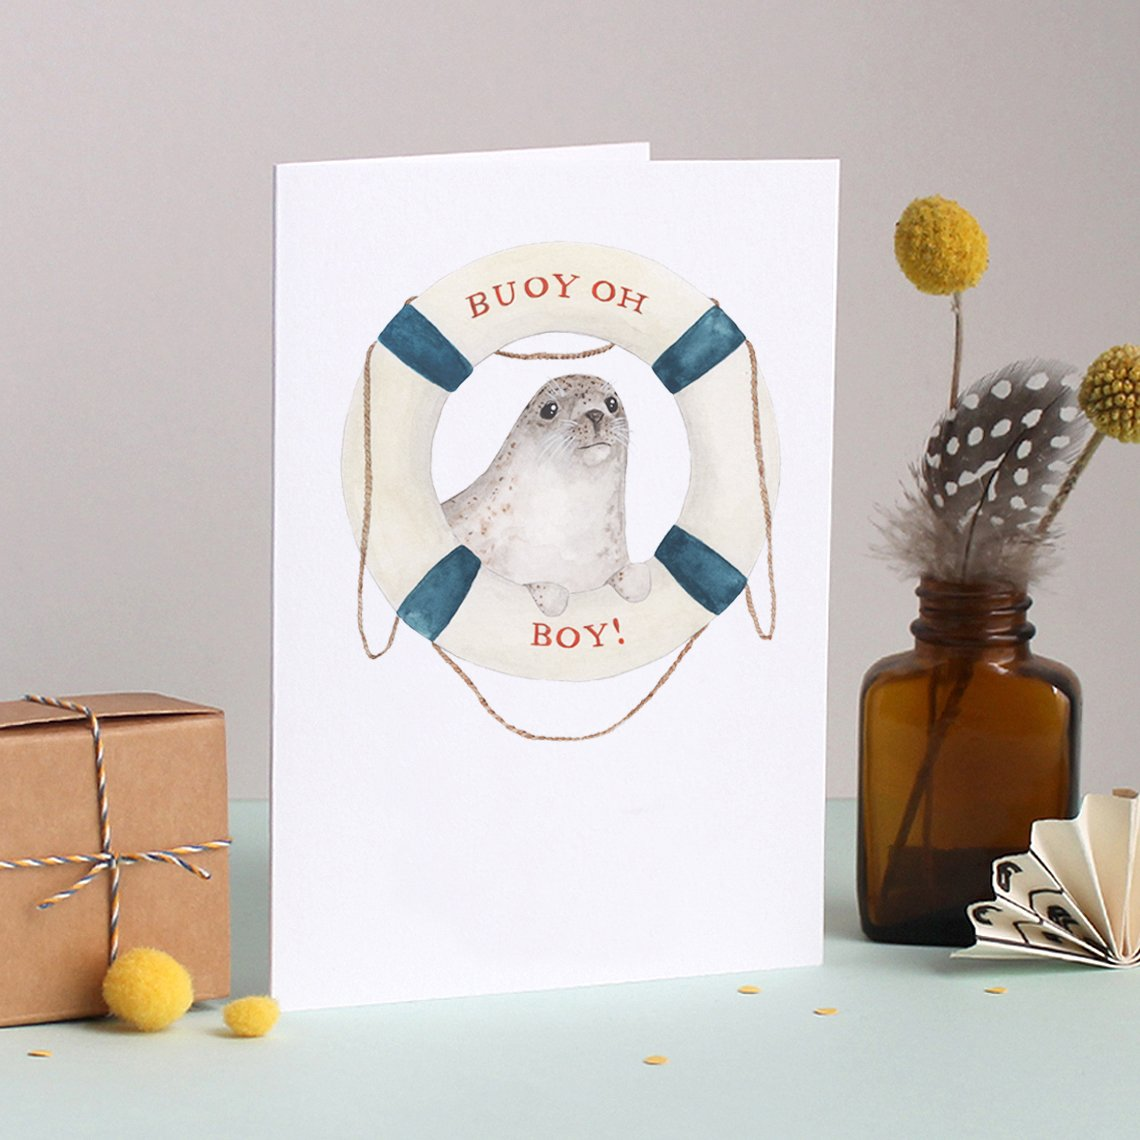 Mister Peebles Greeting Card 'Buoy oh Boy!'